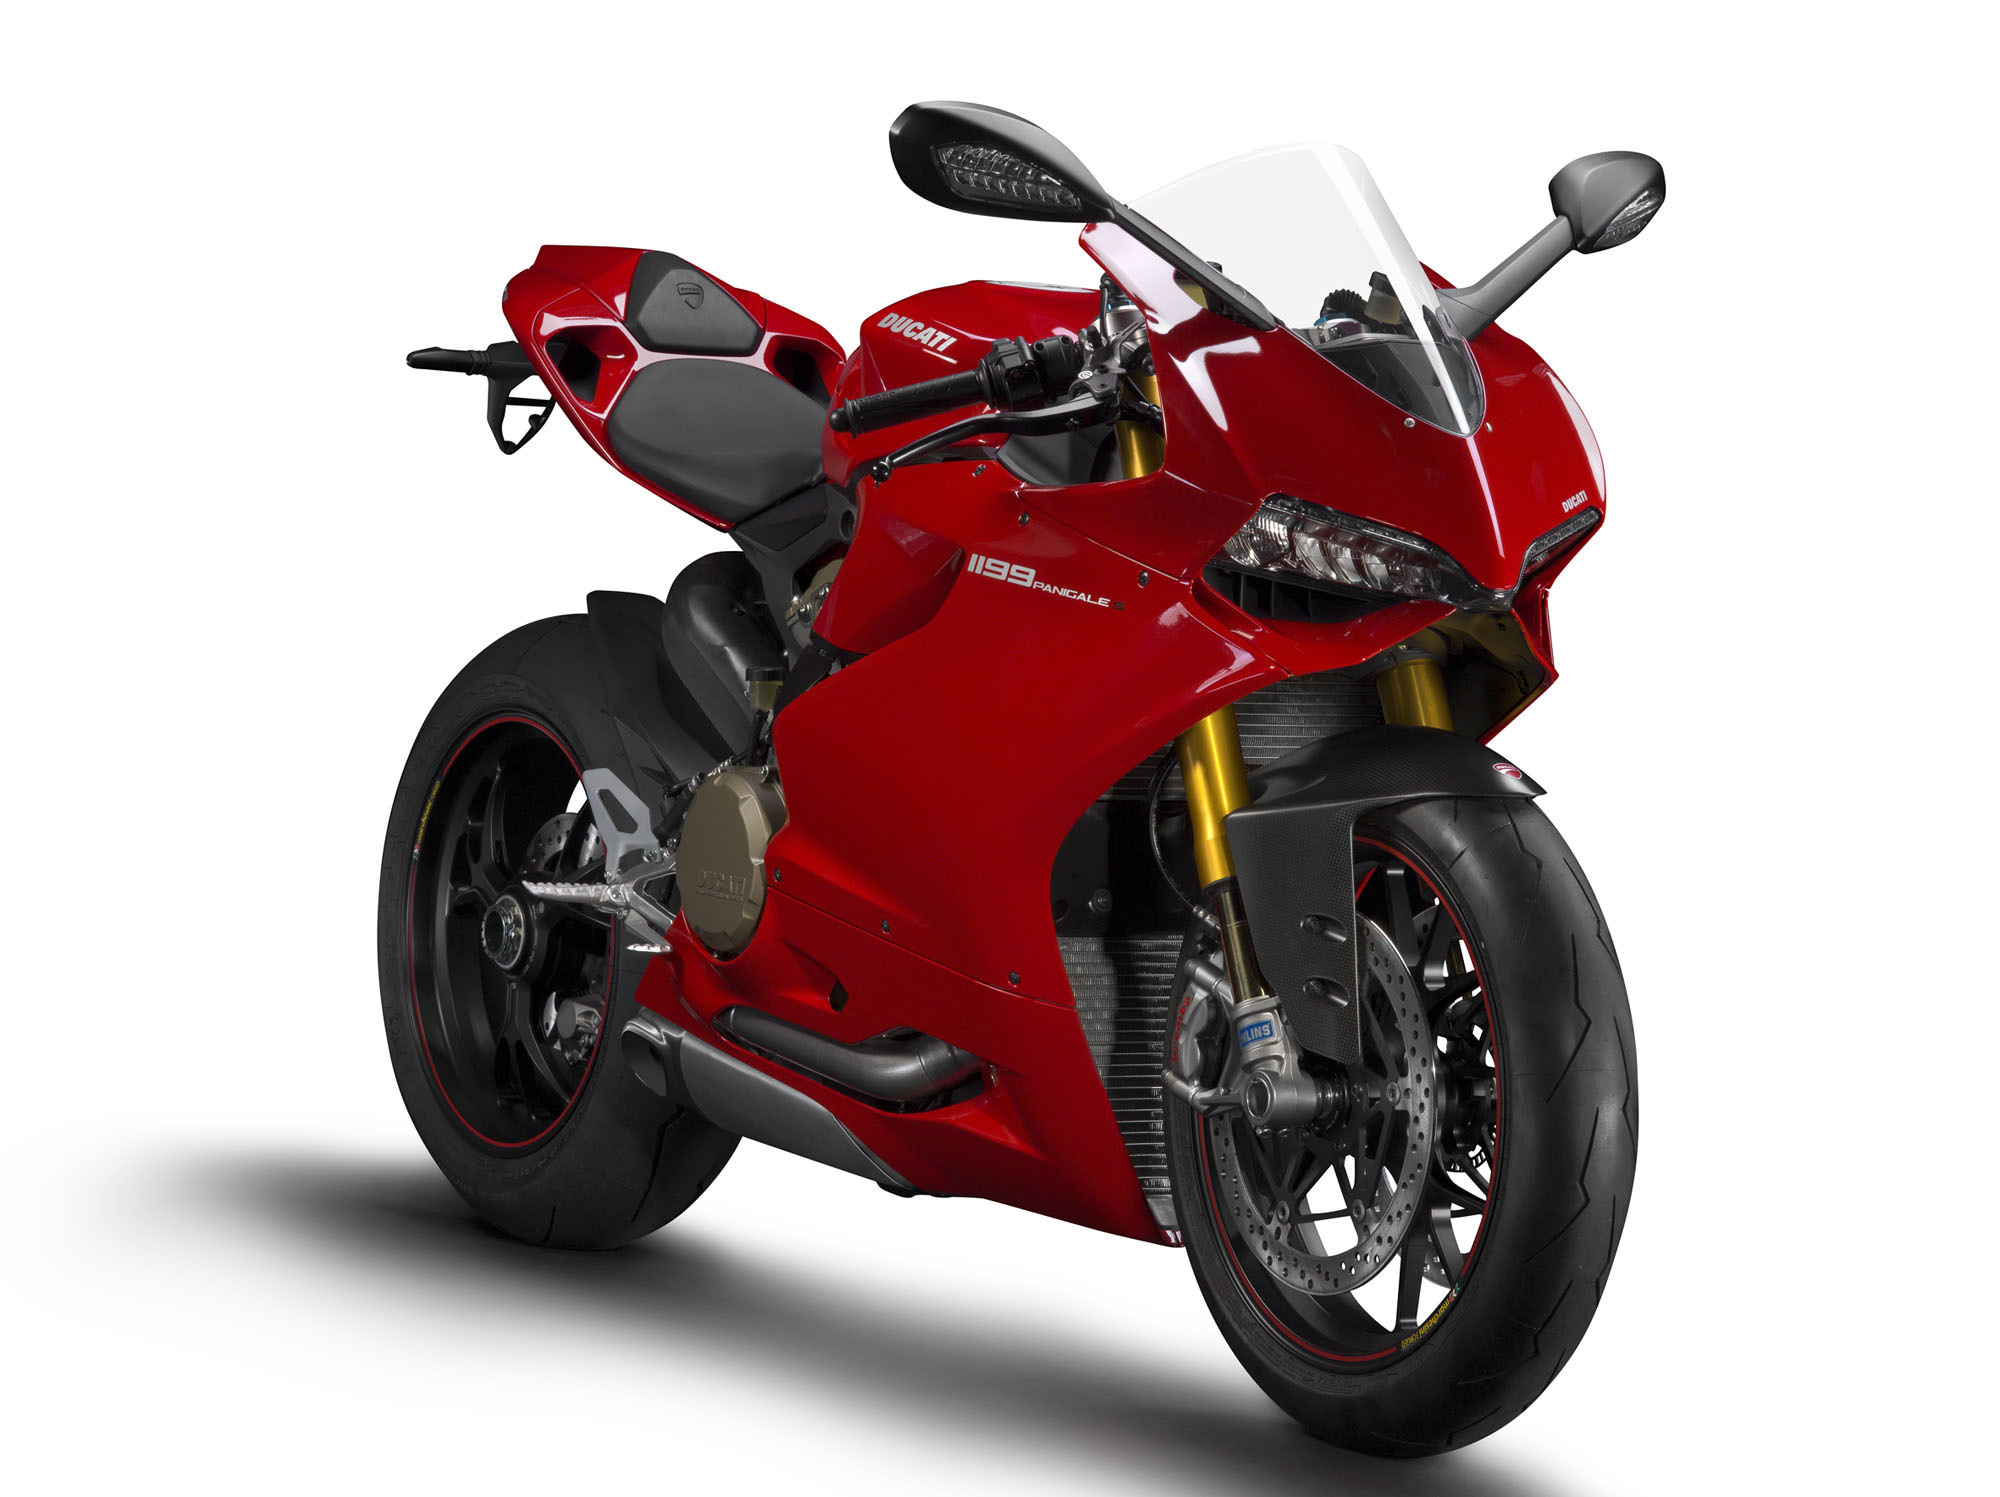 2012 Ducati 1199 Panigale | Top Speed. »